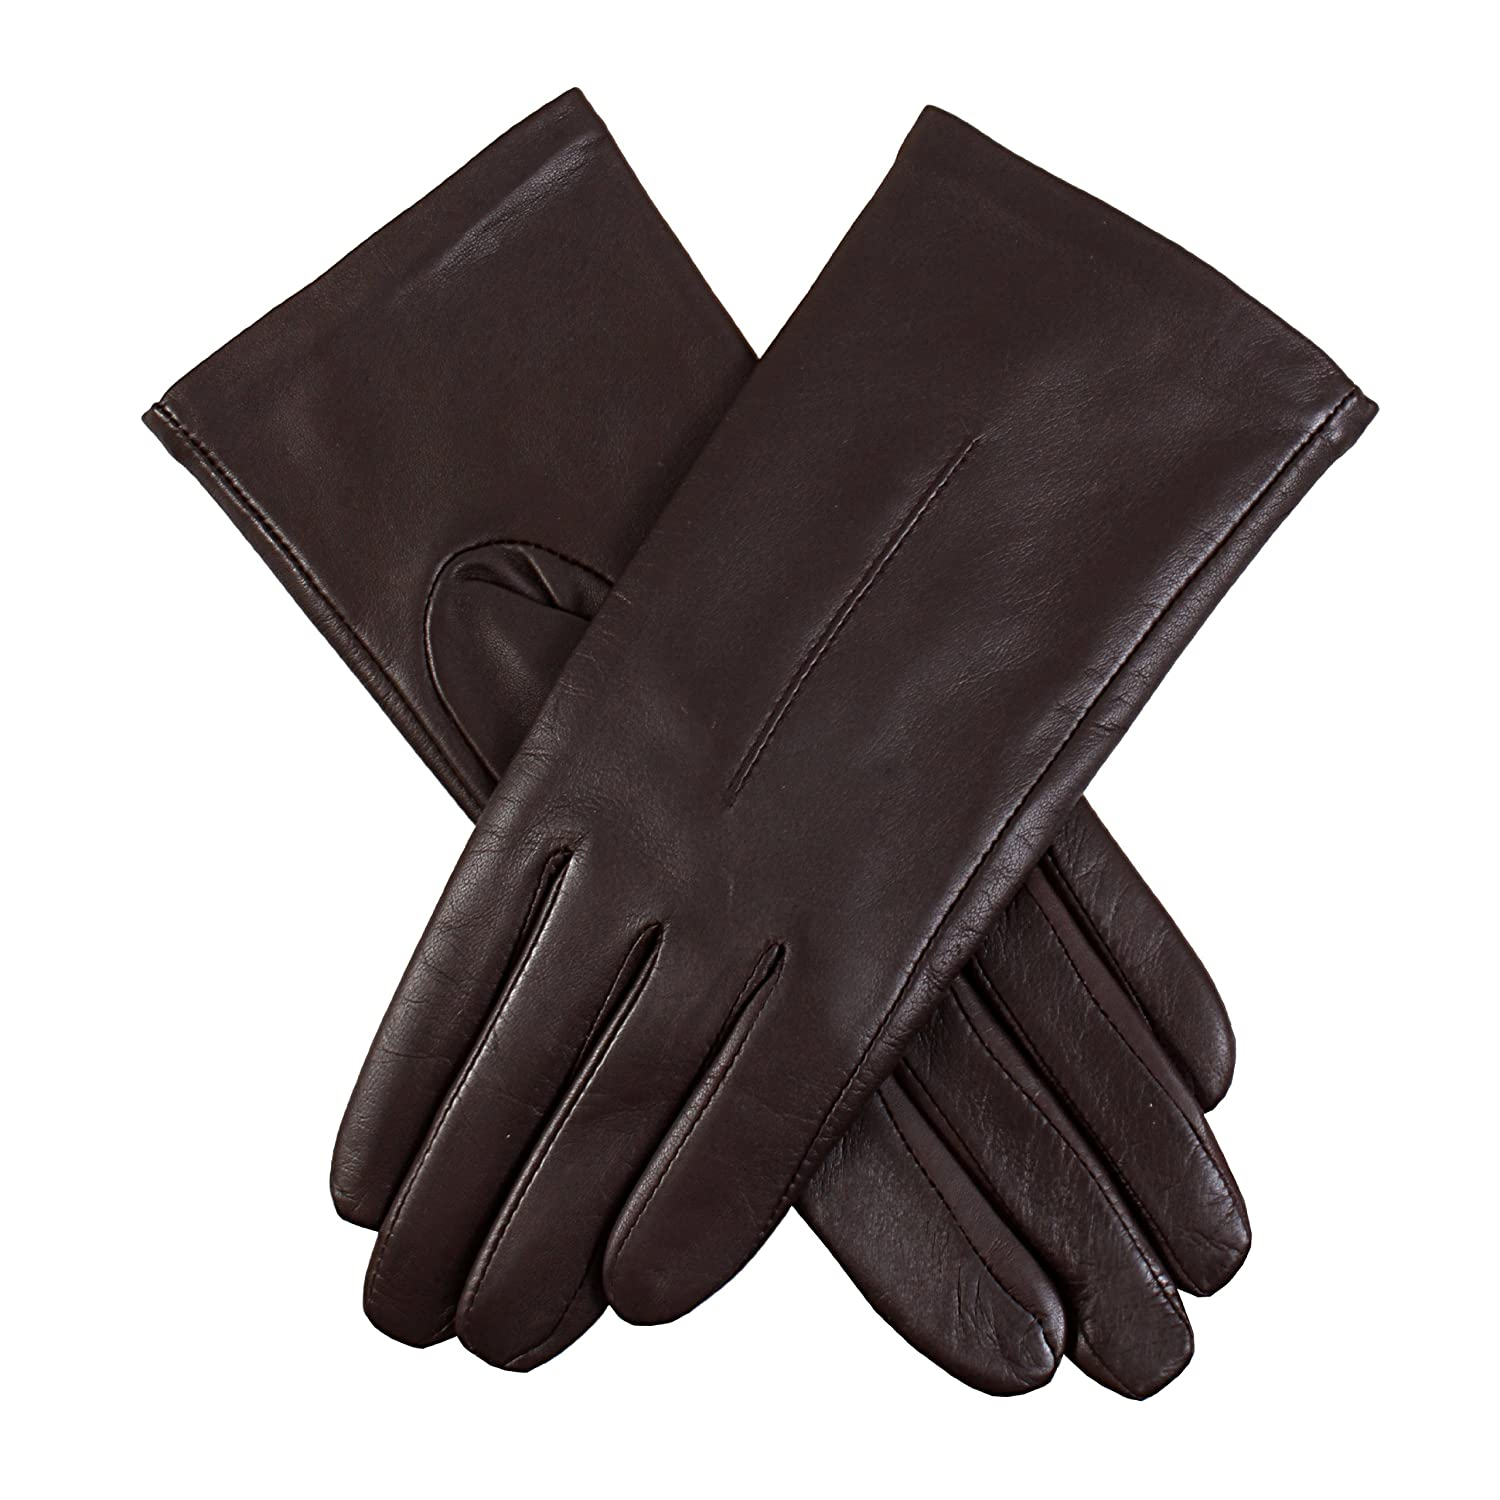 f882e1852 Dents Women's Warm Lined Leather Glove: Amazon.co.uk: Clothing